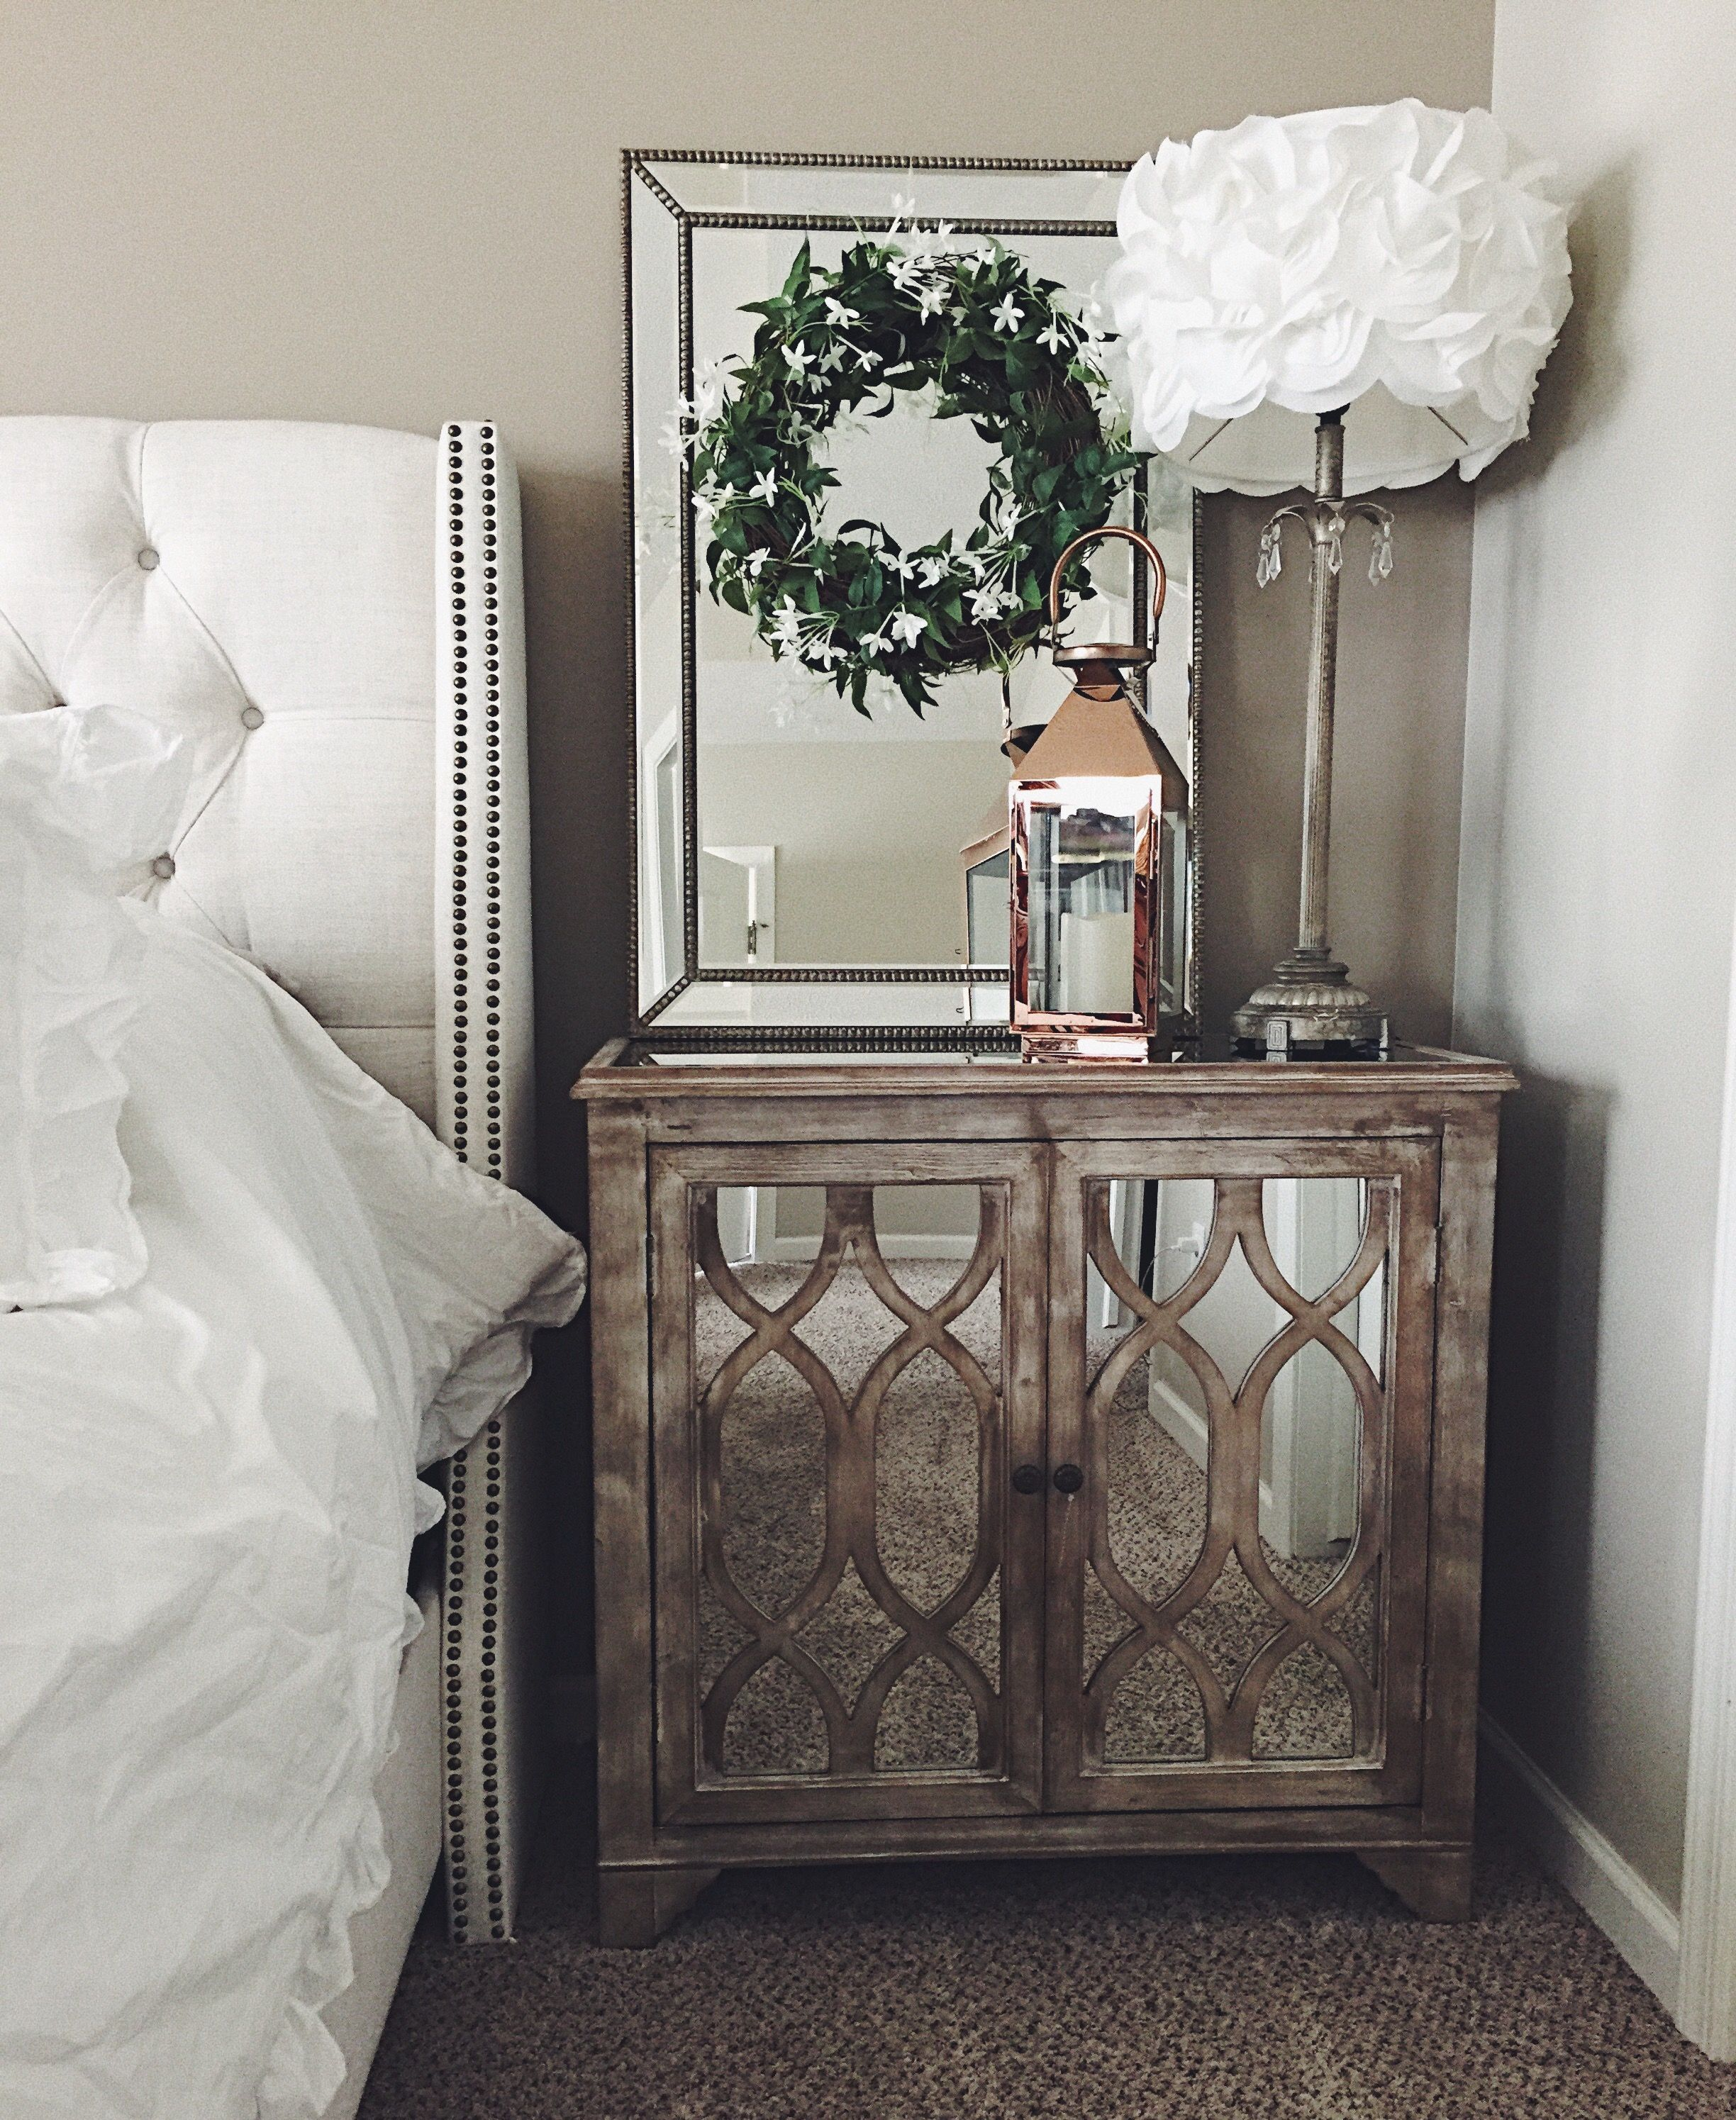 Rustic Mirrored Nightstand Addyson Living Mirrors With Wreath Shabby Chic Lamps Bronze Lantern Modern Farmhouse Style